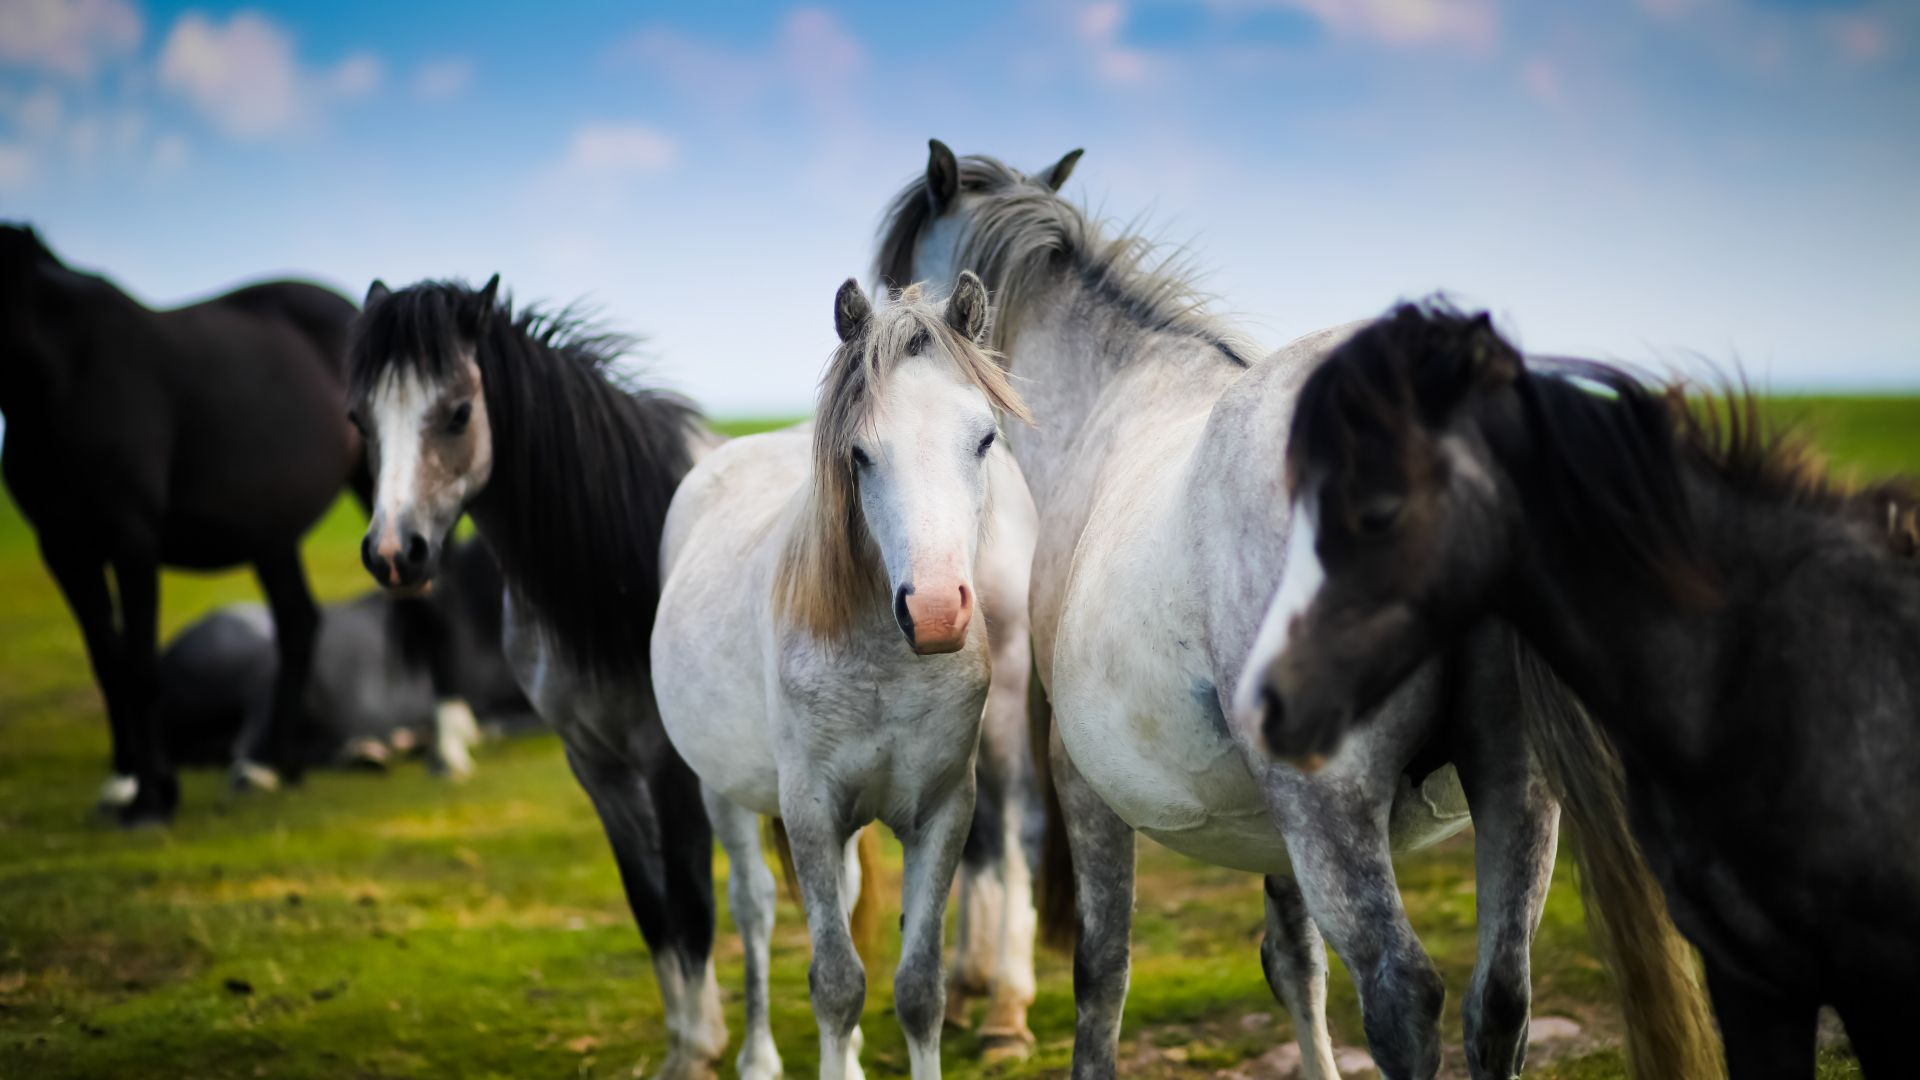 Horses Wallpaper HD